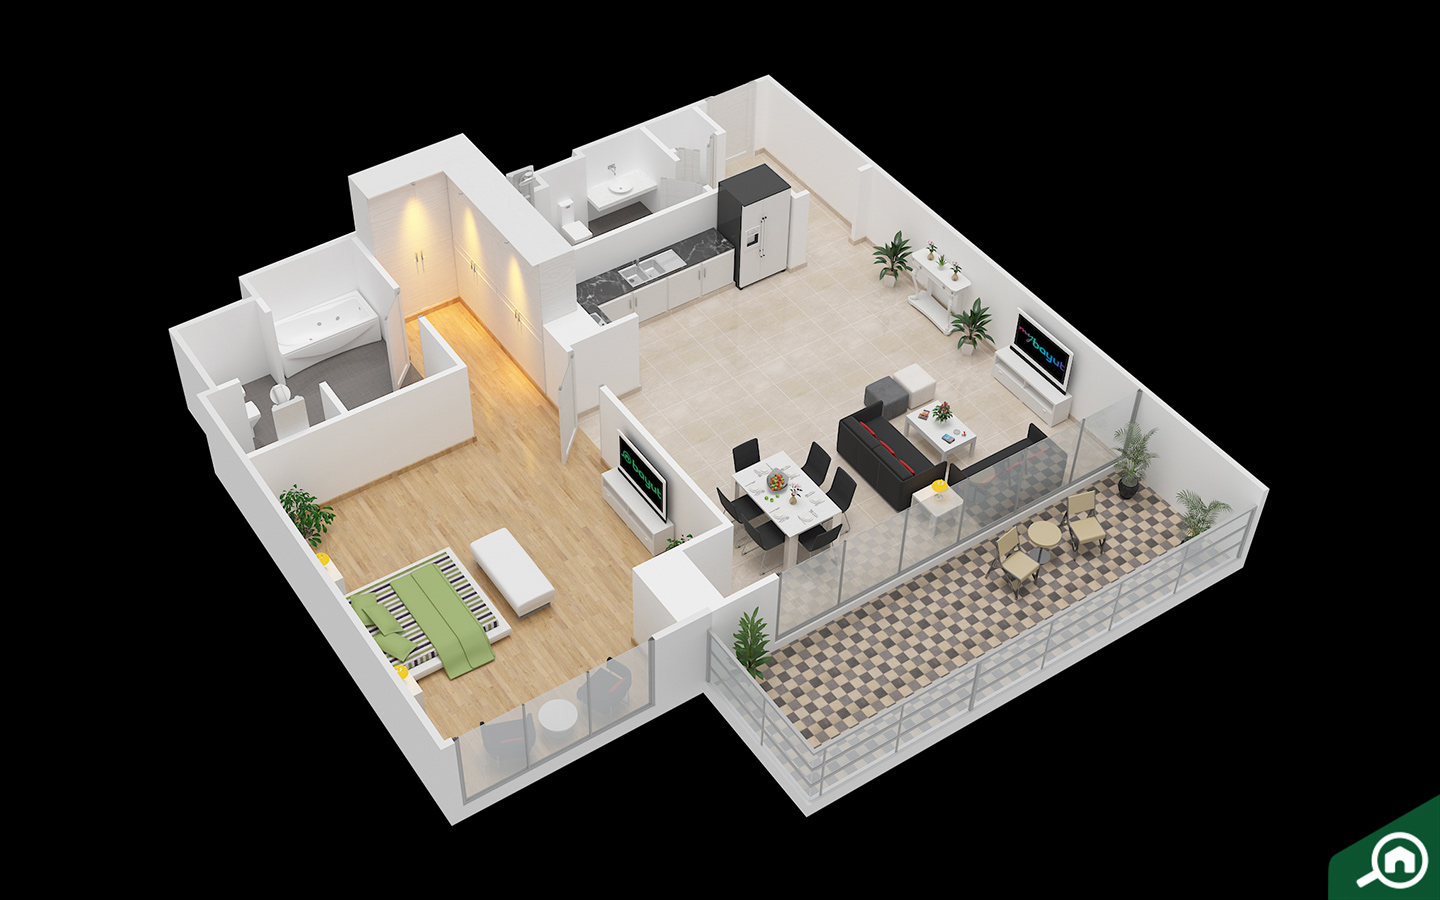 interactive floor plans of property on bayut.com